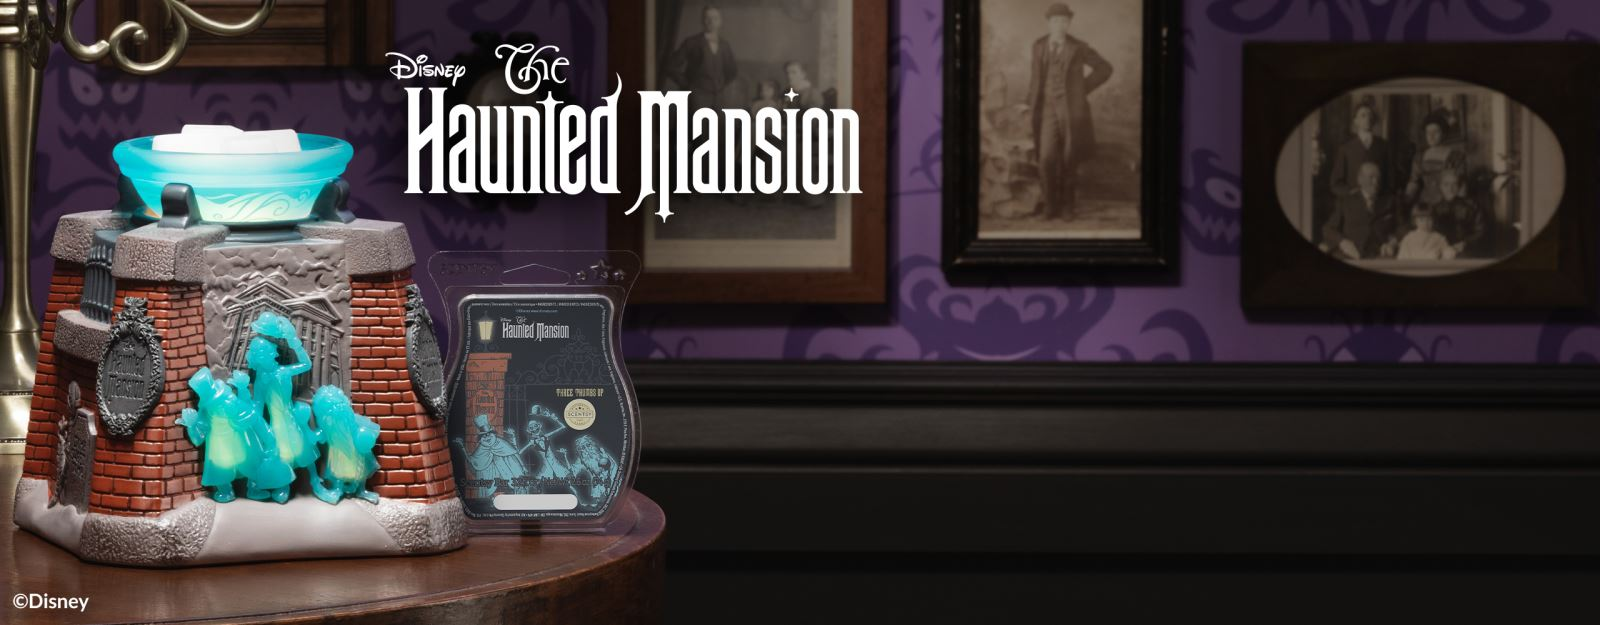 The Disney Haunted Mansion – Scentsy Warmer and Disney Haunted Mansion: Three Thumbs Up – Scentsy Bar are displayed on a table with vintage photos and spooky wallpaper in the background.